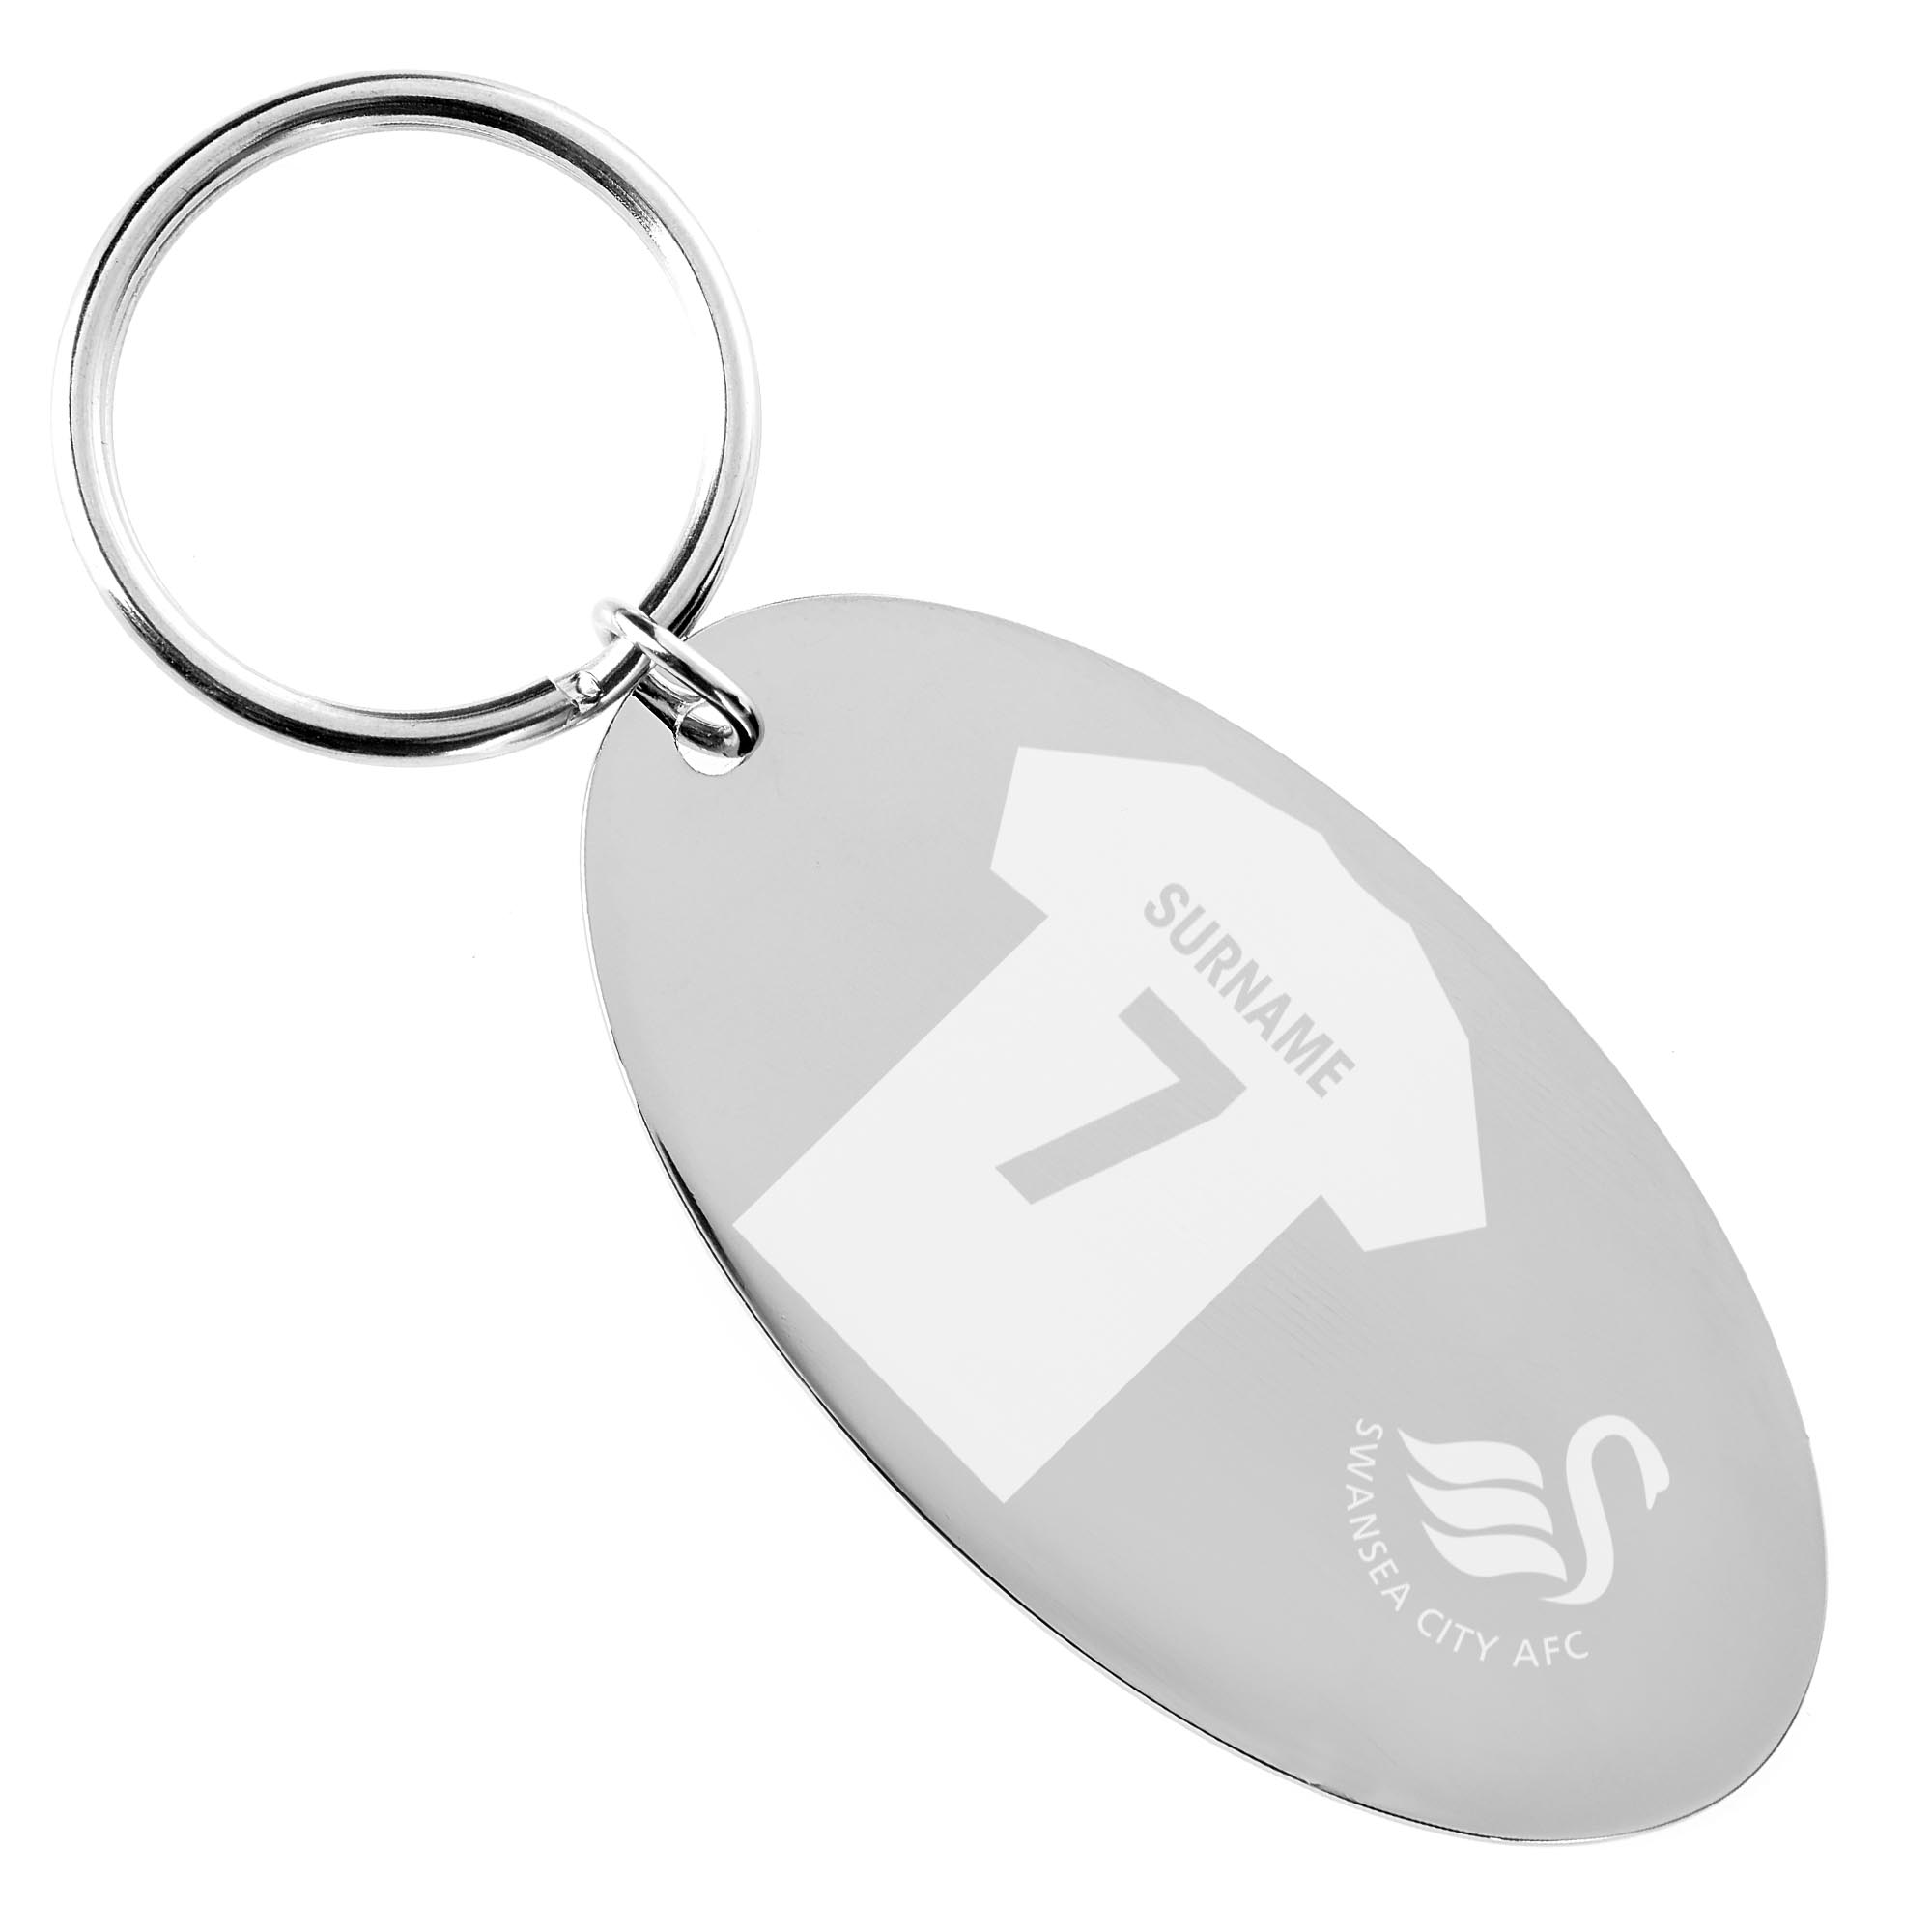 Swansea City AFC Shirt Keyring